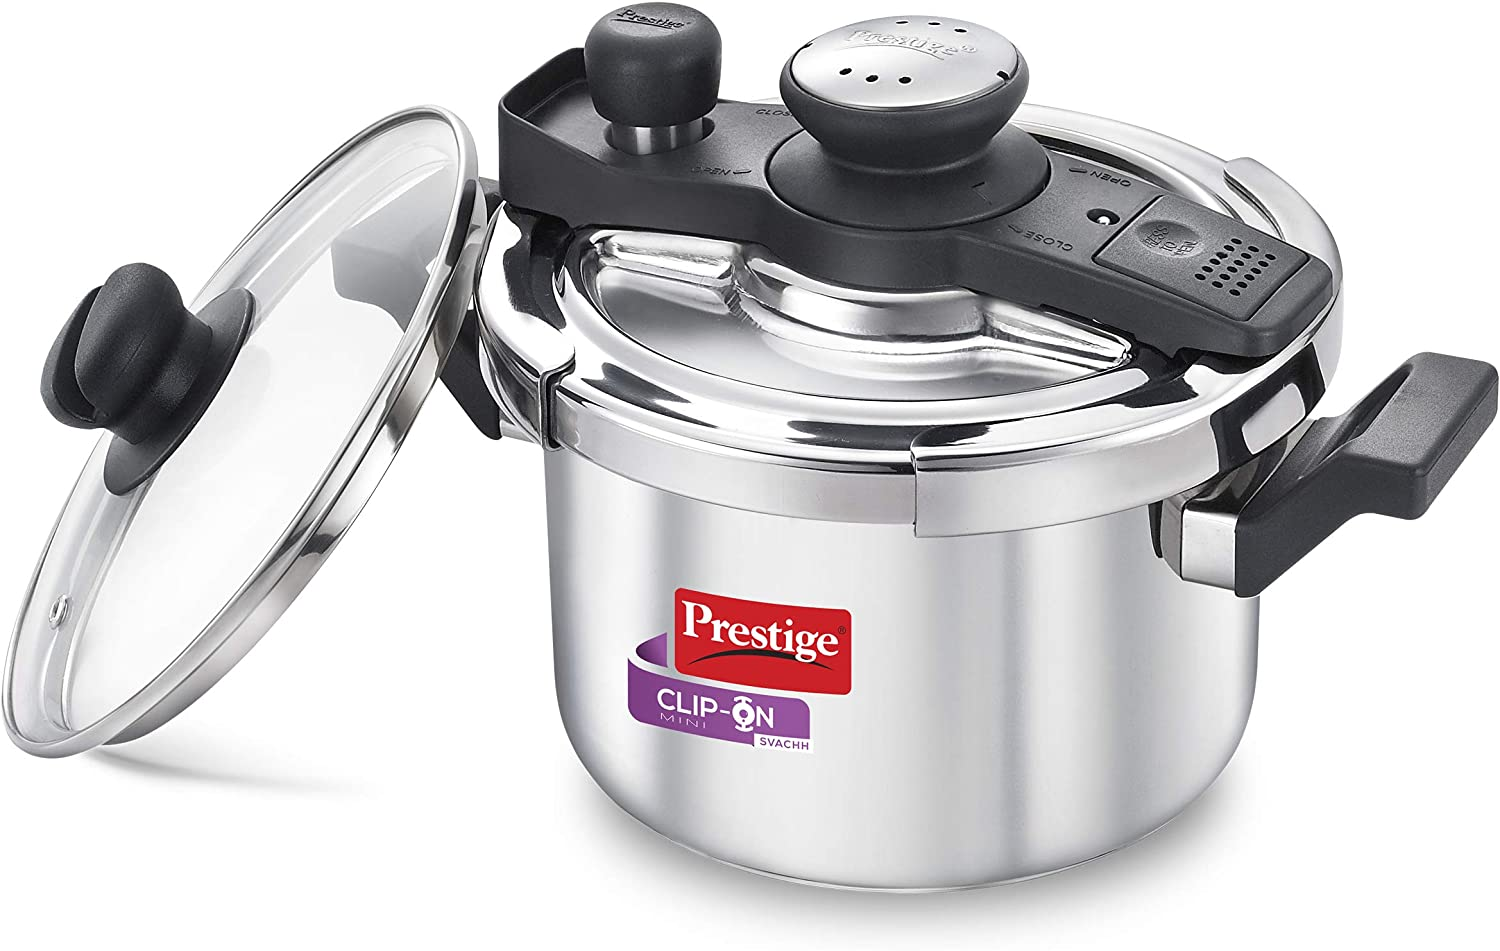 Prestige Svachh Clip-on Mini Stainless Steel 3 Litre Pressure Cooker